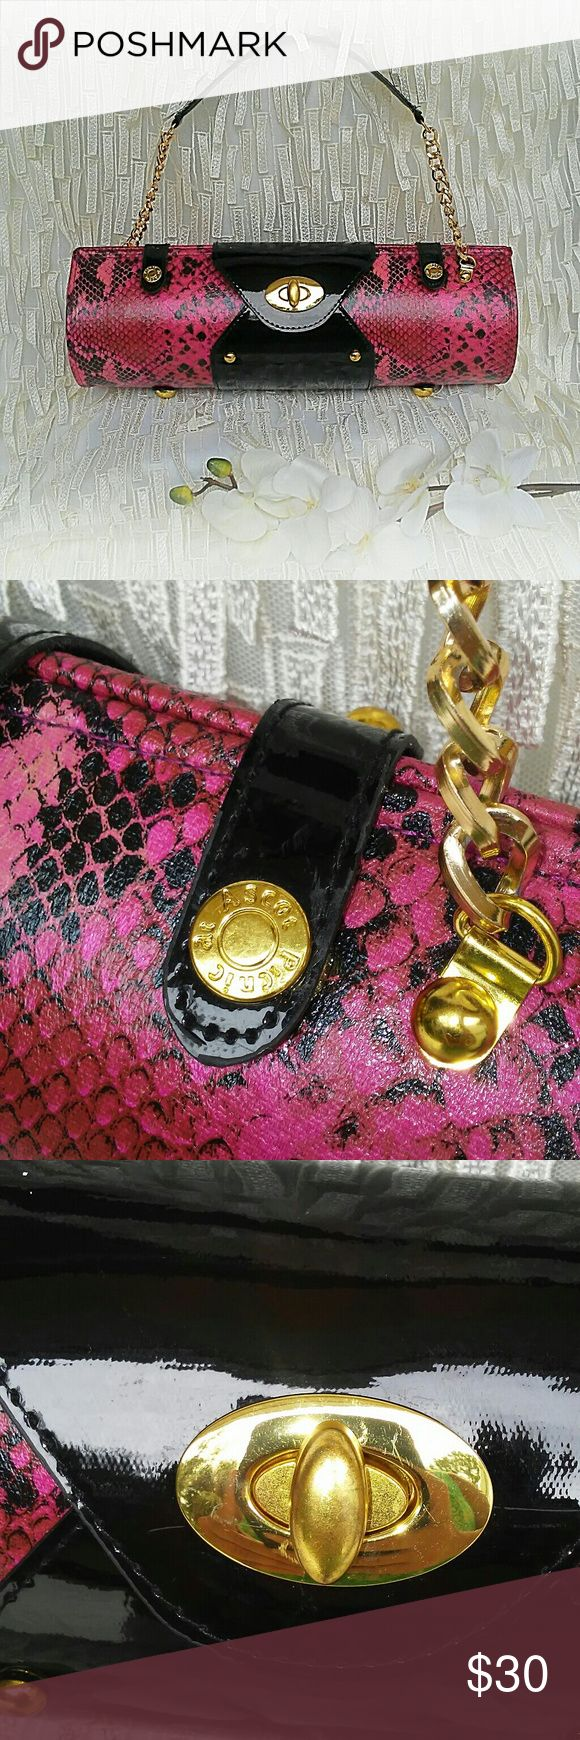 Picnic at Ascot Wine Purse One of a kind high quality wine carrier by Picnic at Ascot. This beautiful hardsided wine purse safely carries one bottle of wine or champagne. Hot pink and black snake skin print with black patent leather accents, gold hardware and chain strap.  NWOT....perfect condition (as seen in photos) Give it as a gift or look uber chic at the next BYOB!!! Picnic at Ascot Bags Travel Bags